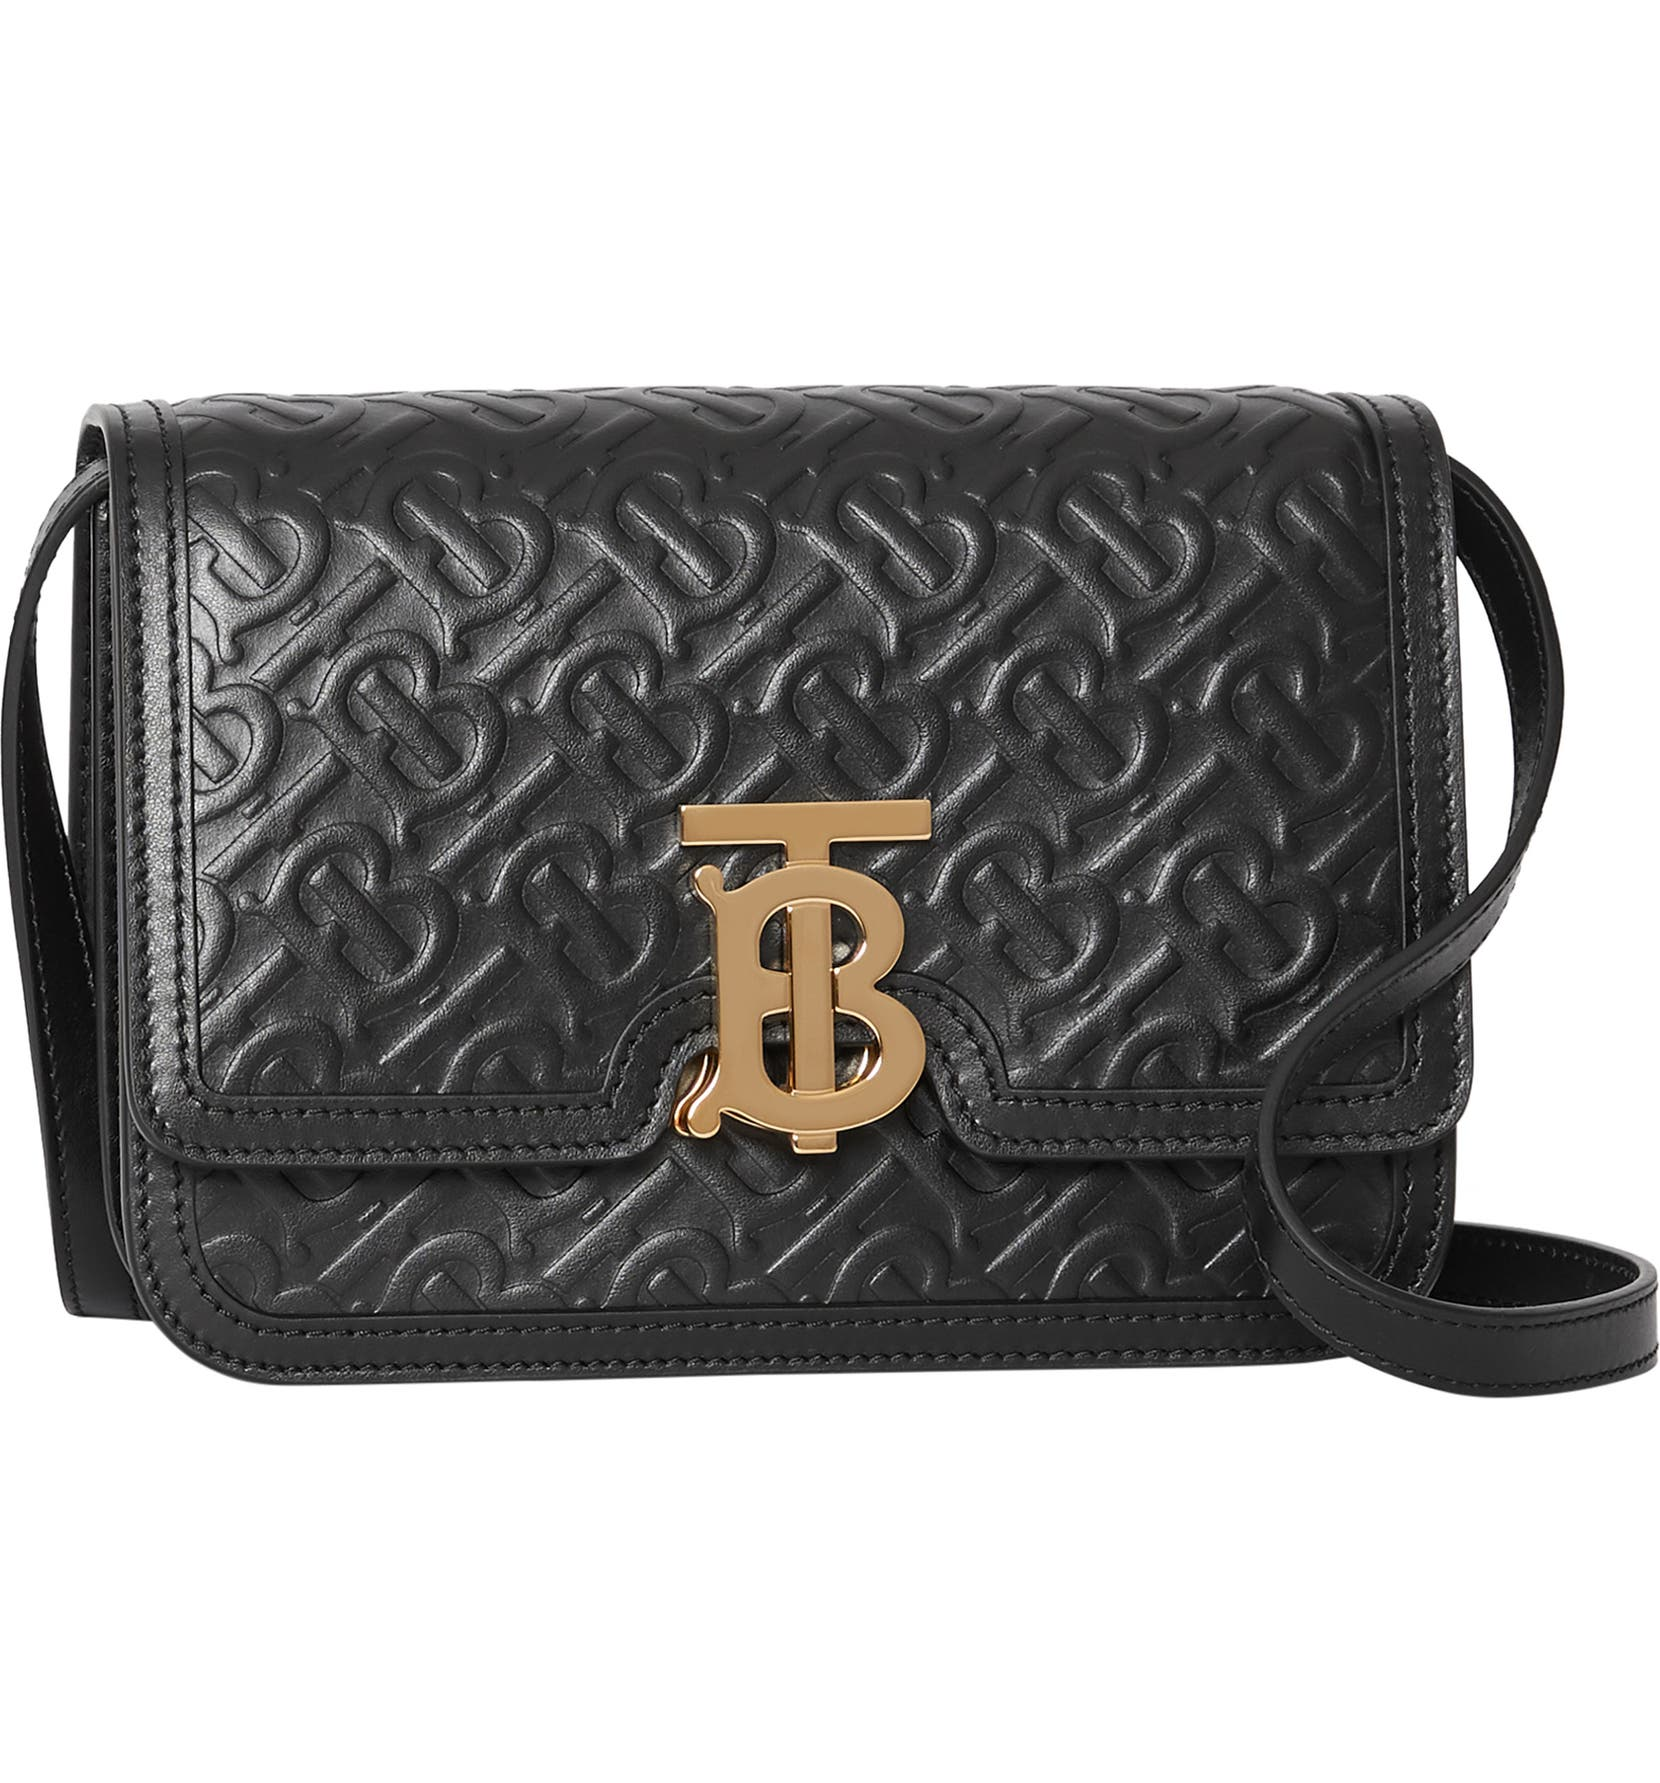 c85d47829f Burberry Small Monogram Leather TB Bag | Nordstrom